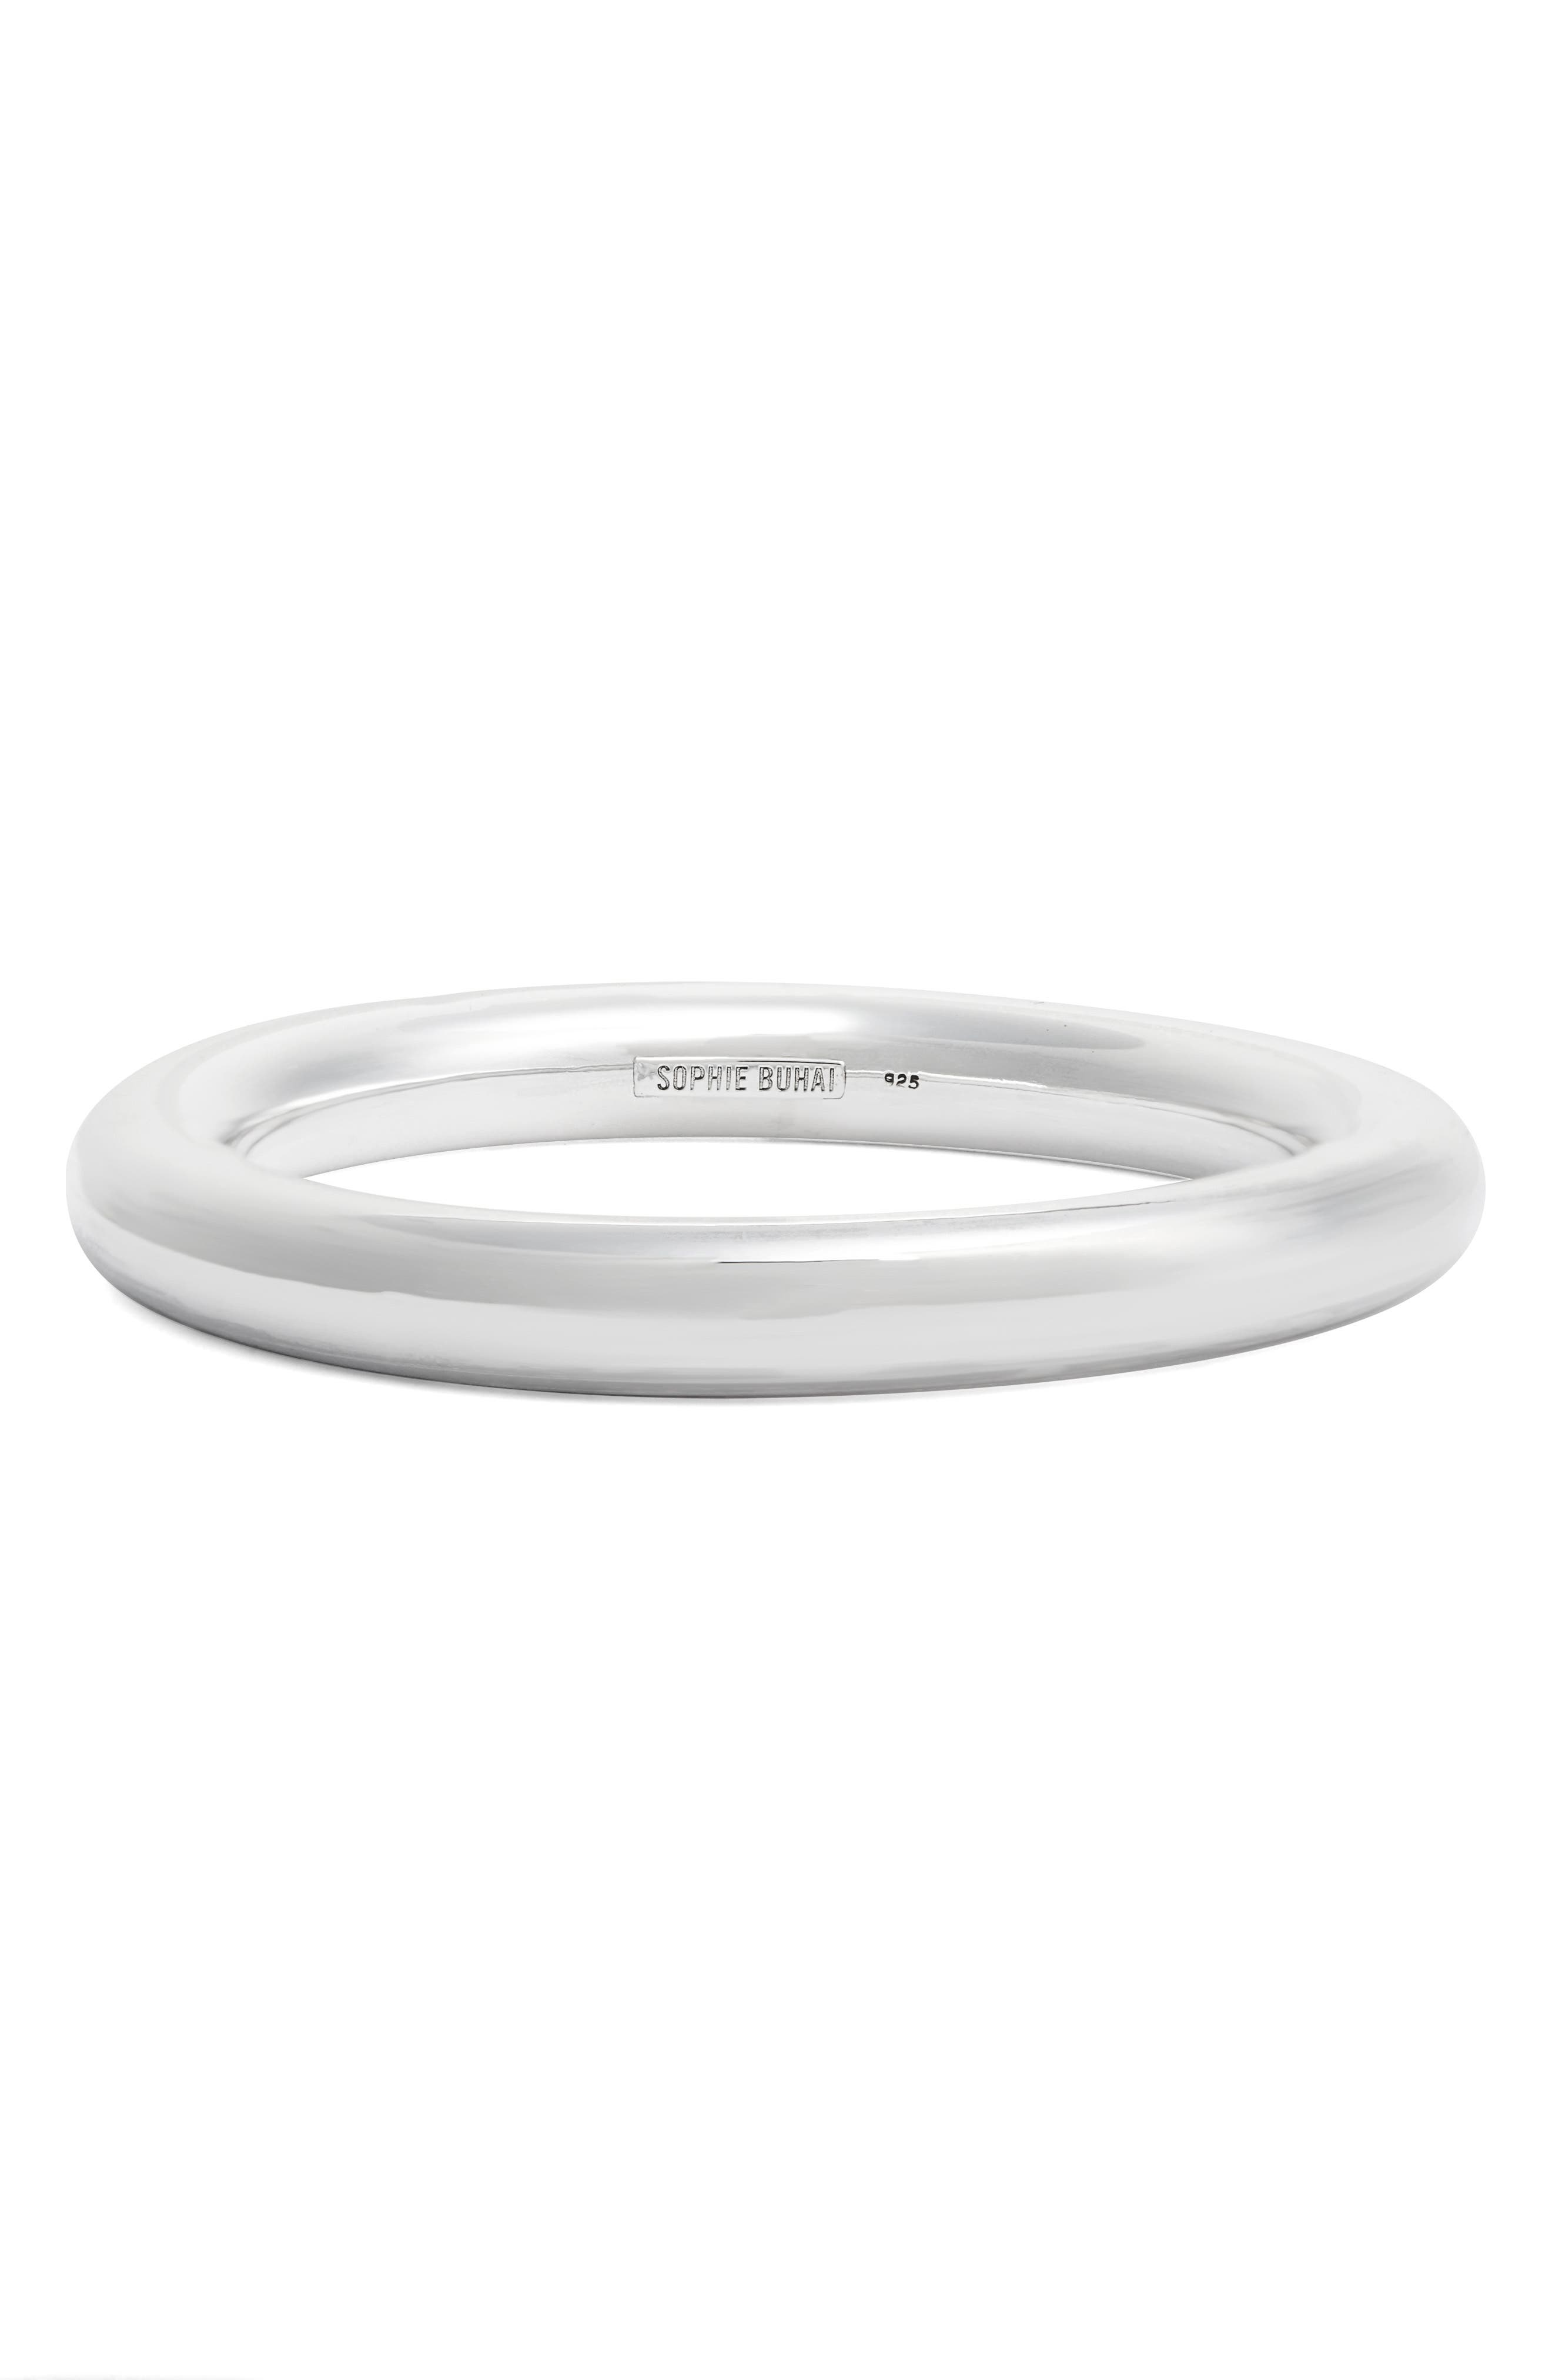 Main Image - Sophie Buhai Classic Circle Bangle